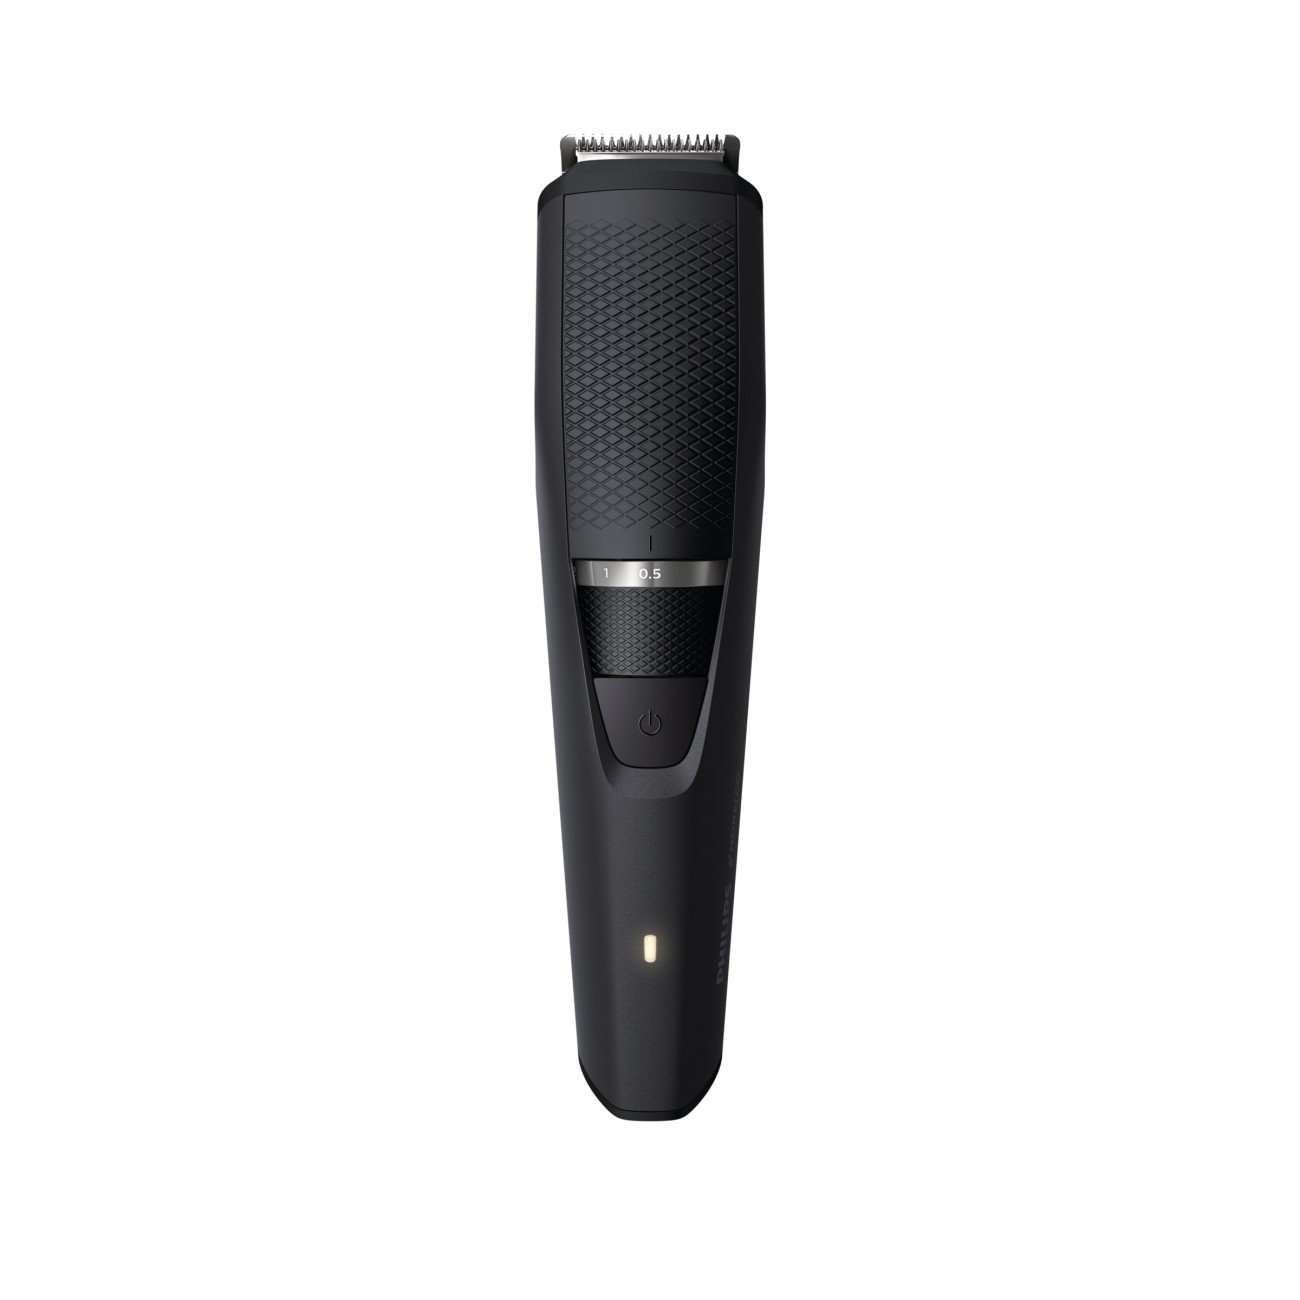 Philips Norelco Beard Trimmer BT3210/41 - cordless grooming,  rechargable, adjustable length, beard, stubble, and mustache by Philips Norelco (Image #3)